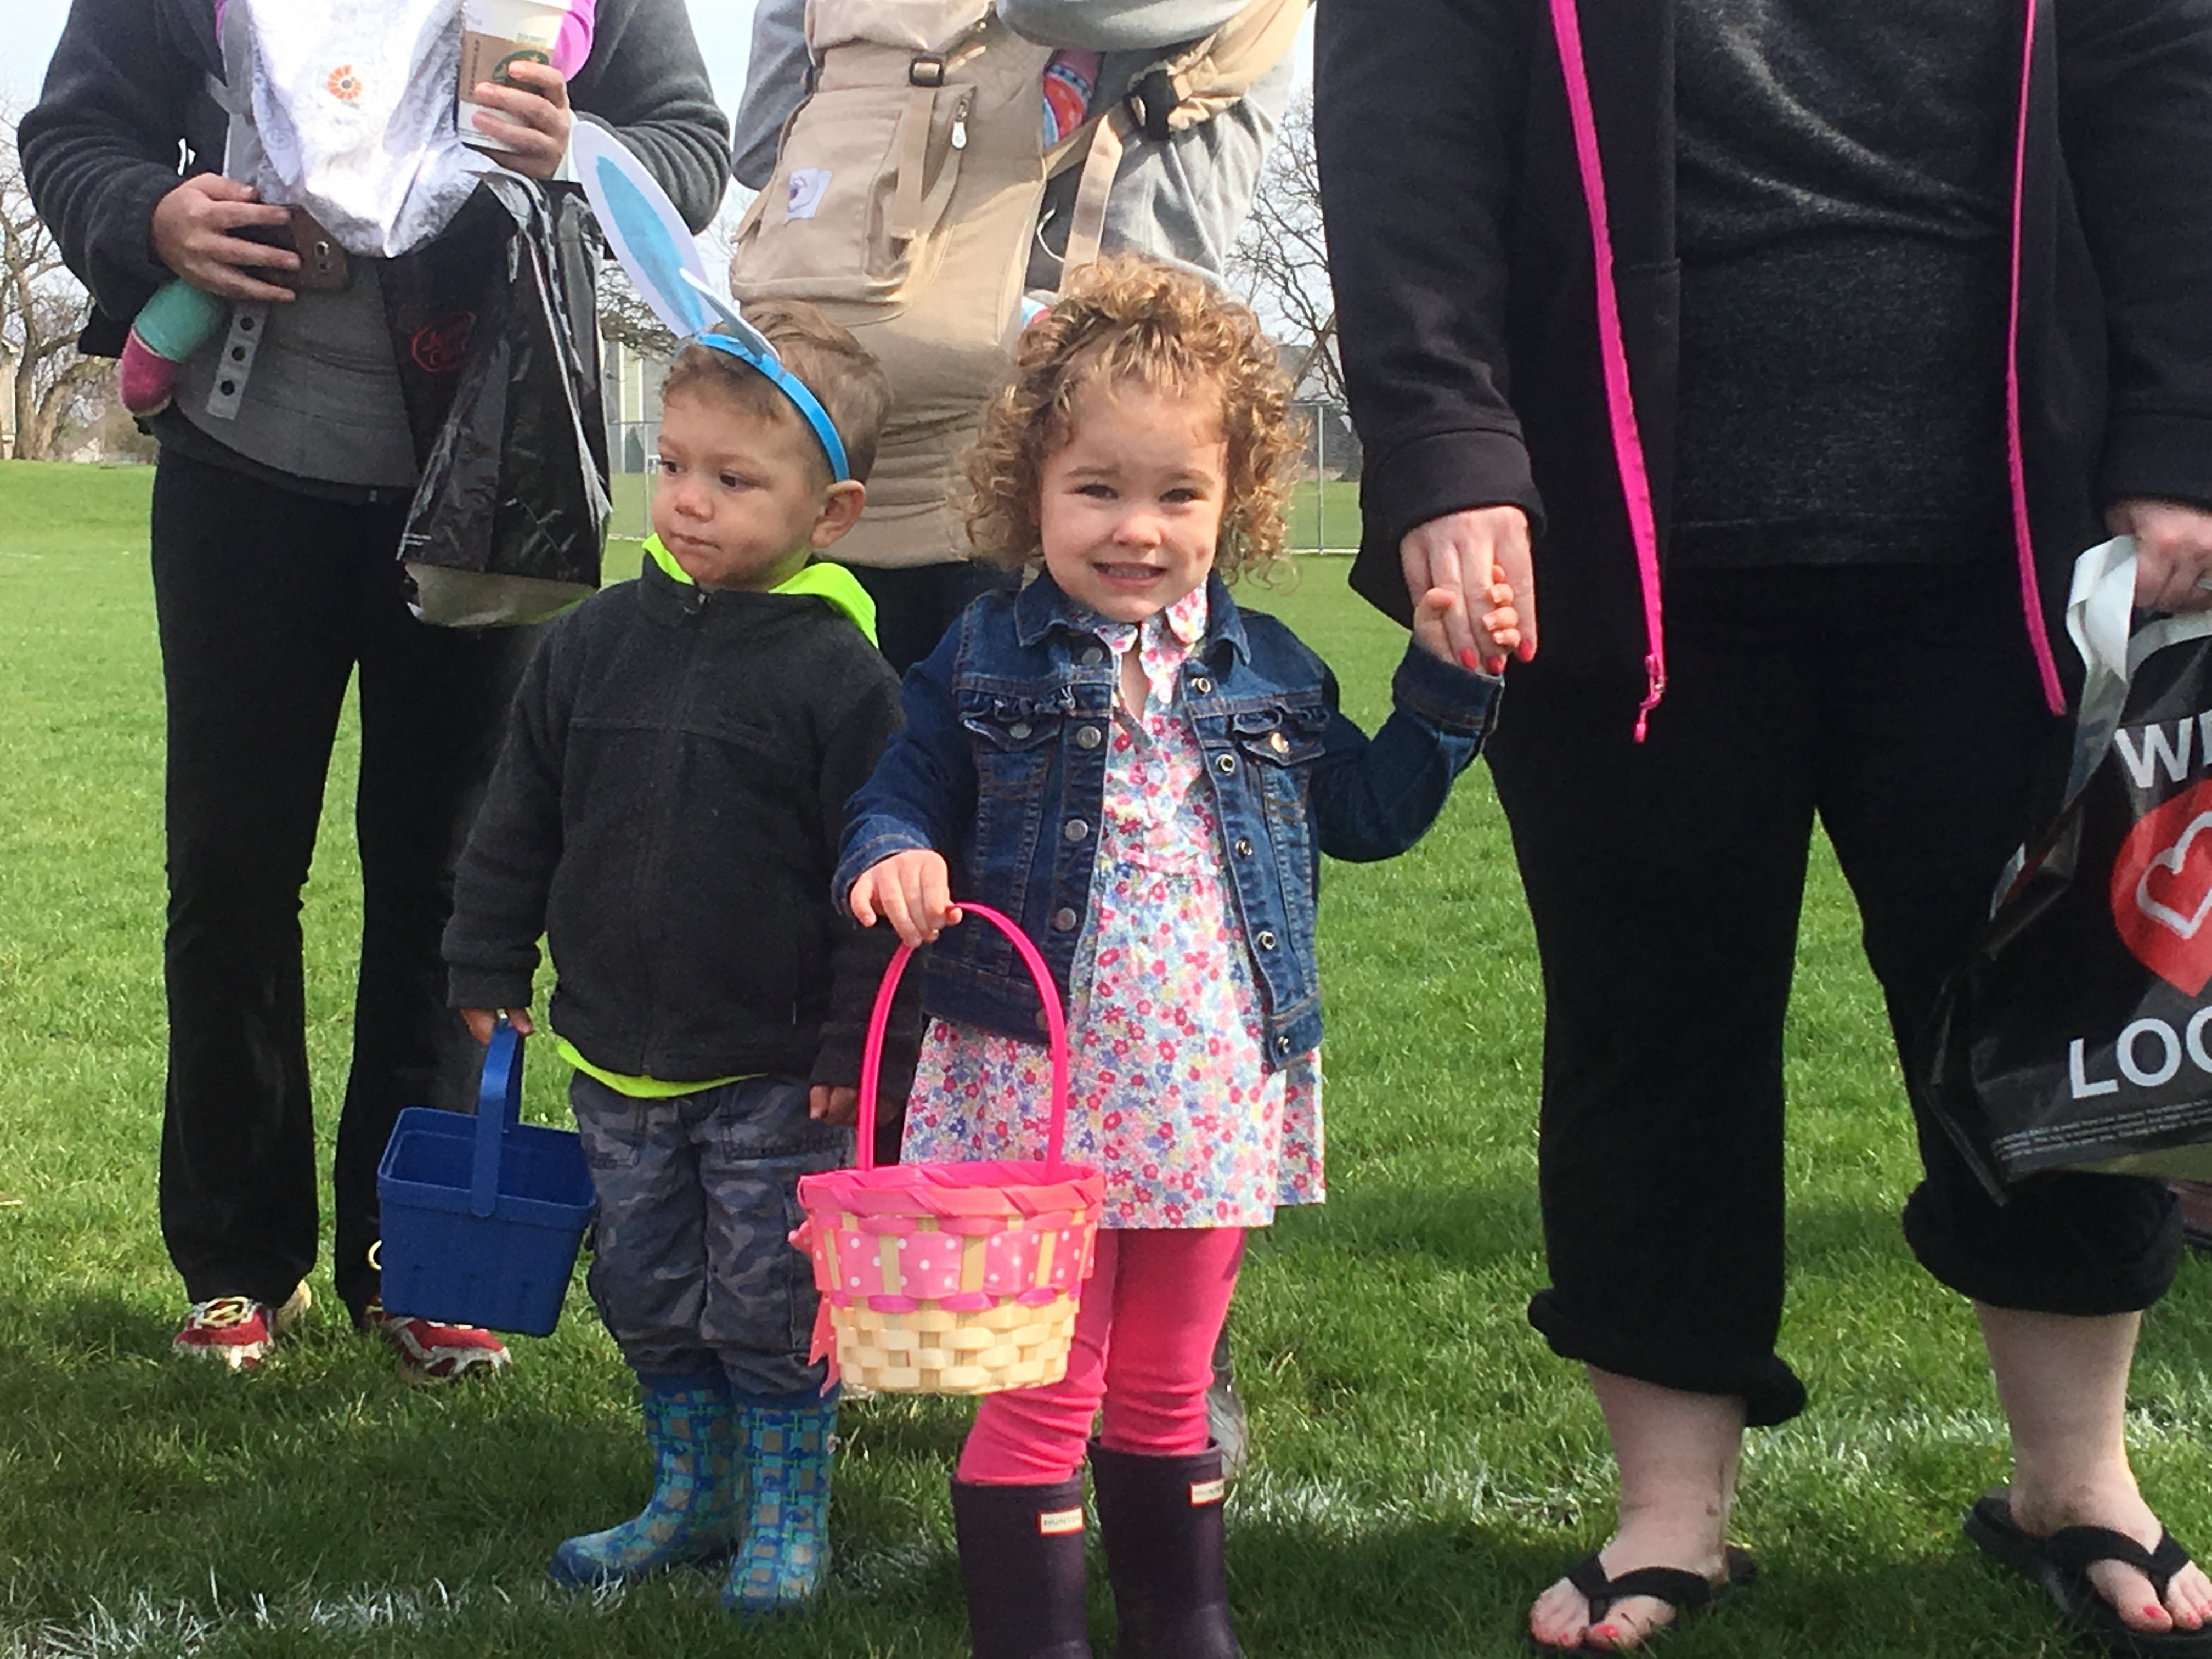 Long Grove's Egg Hunt